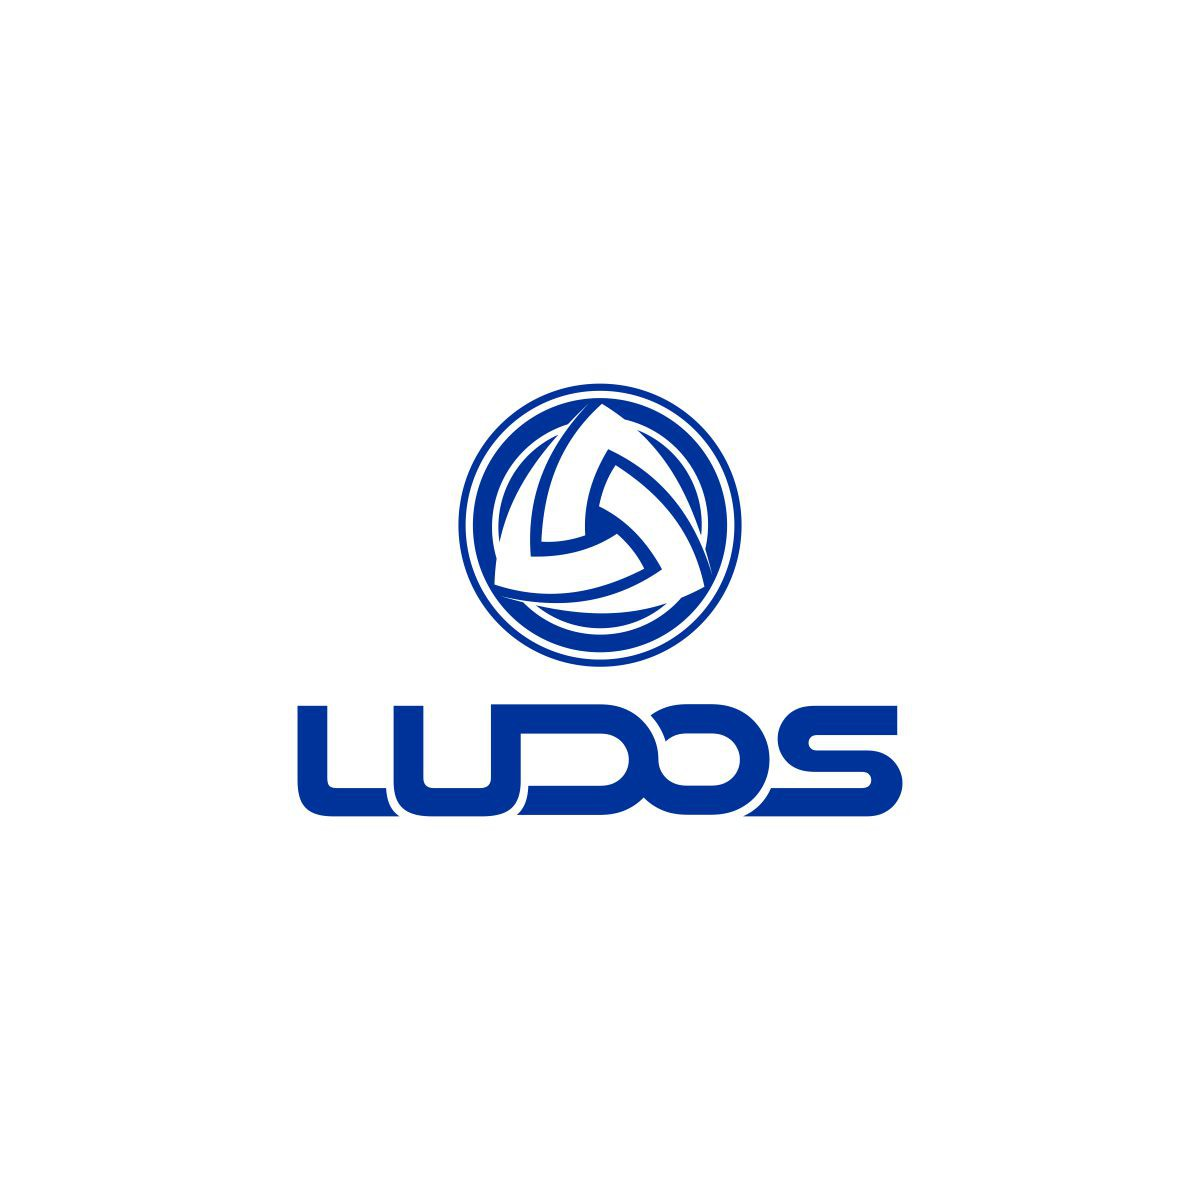 Ludos, a new Brand for gaming products to sell on Amazon needs a logo.